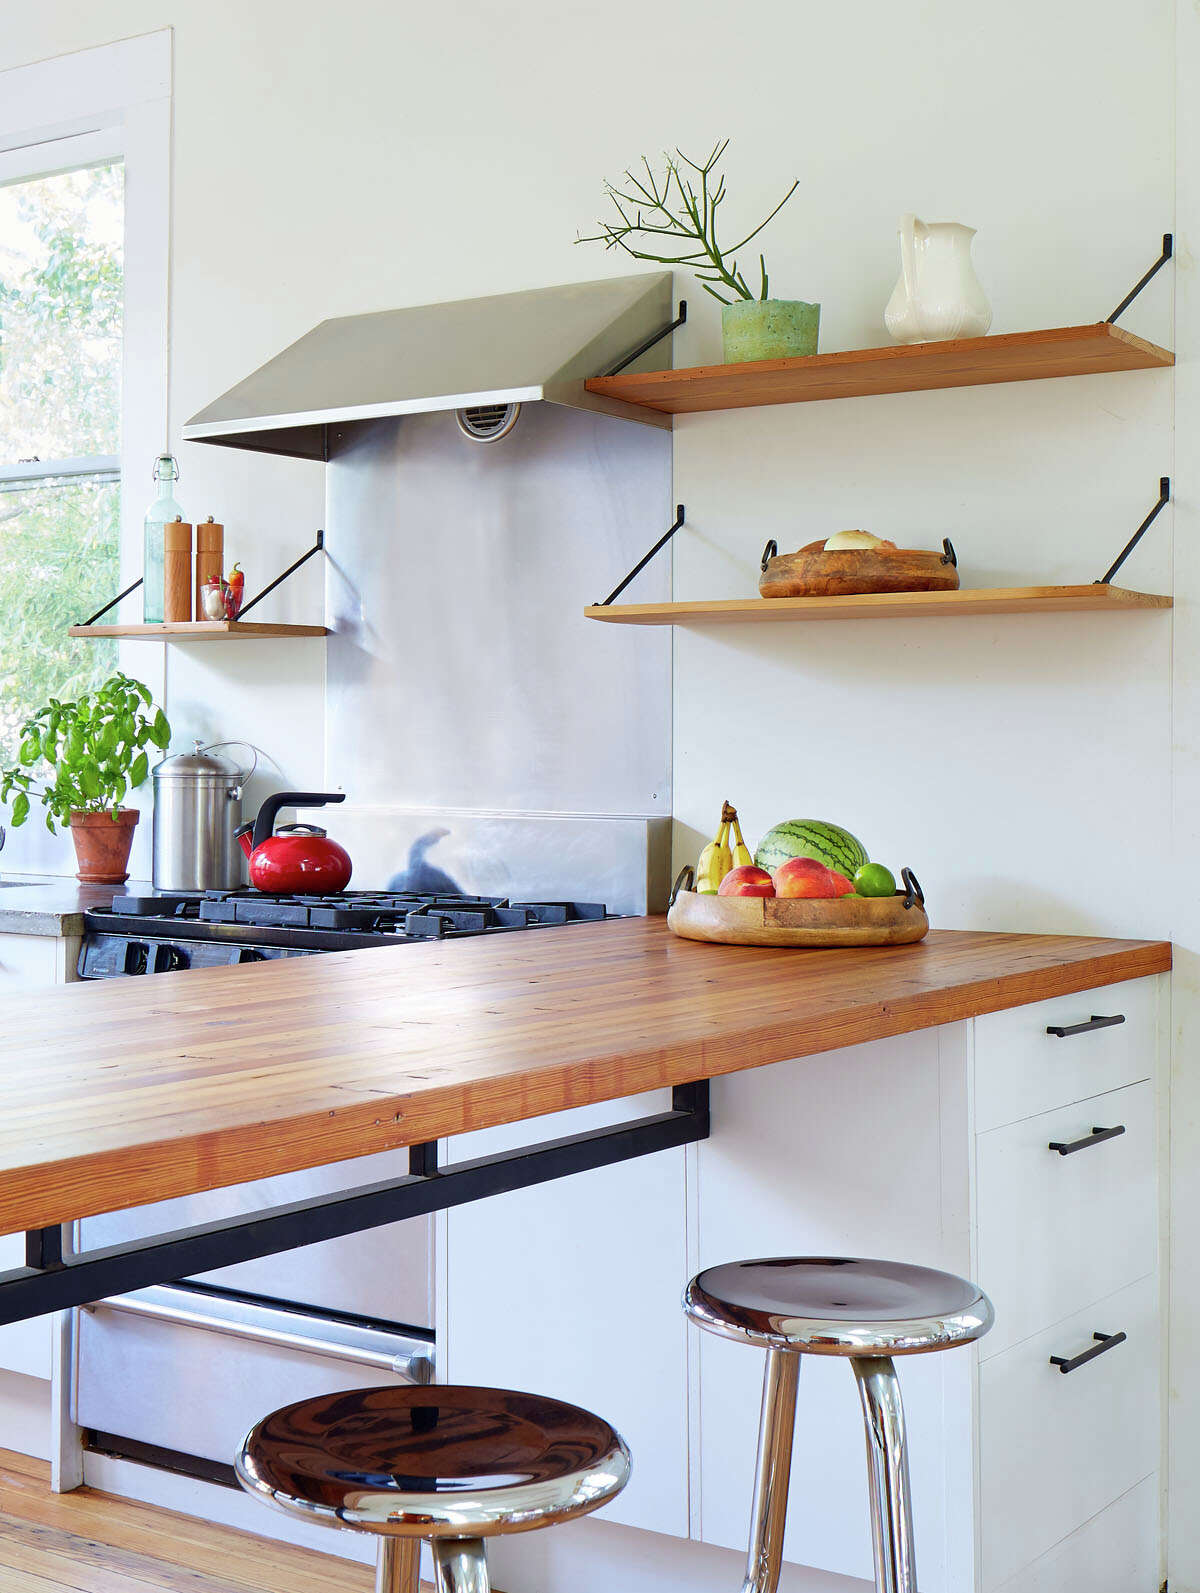 Cotton Estes' kitchen in her Dignowity house features a counter of reclaimed wood.